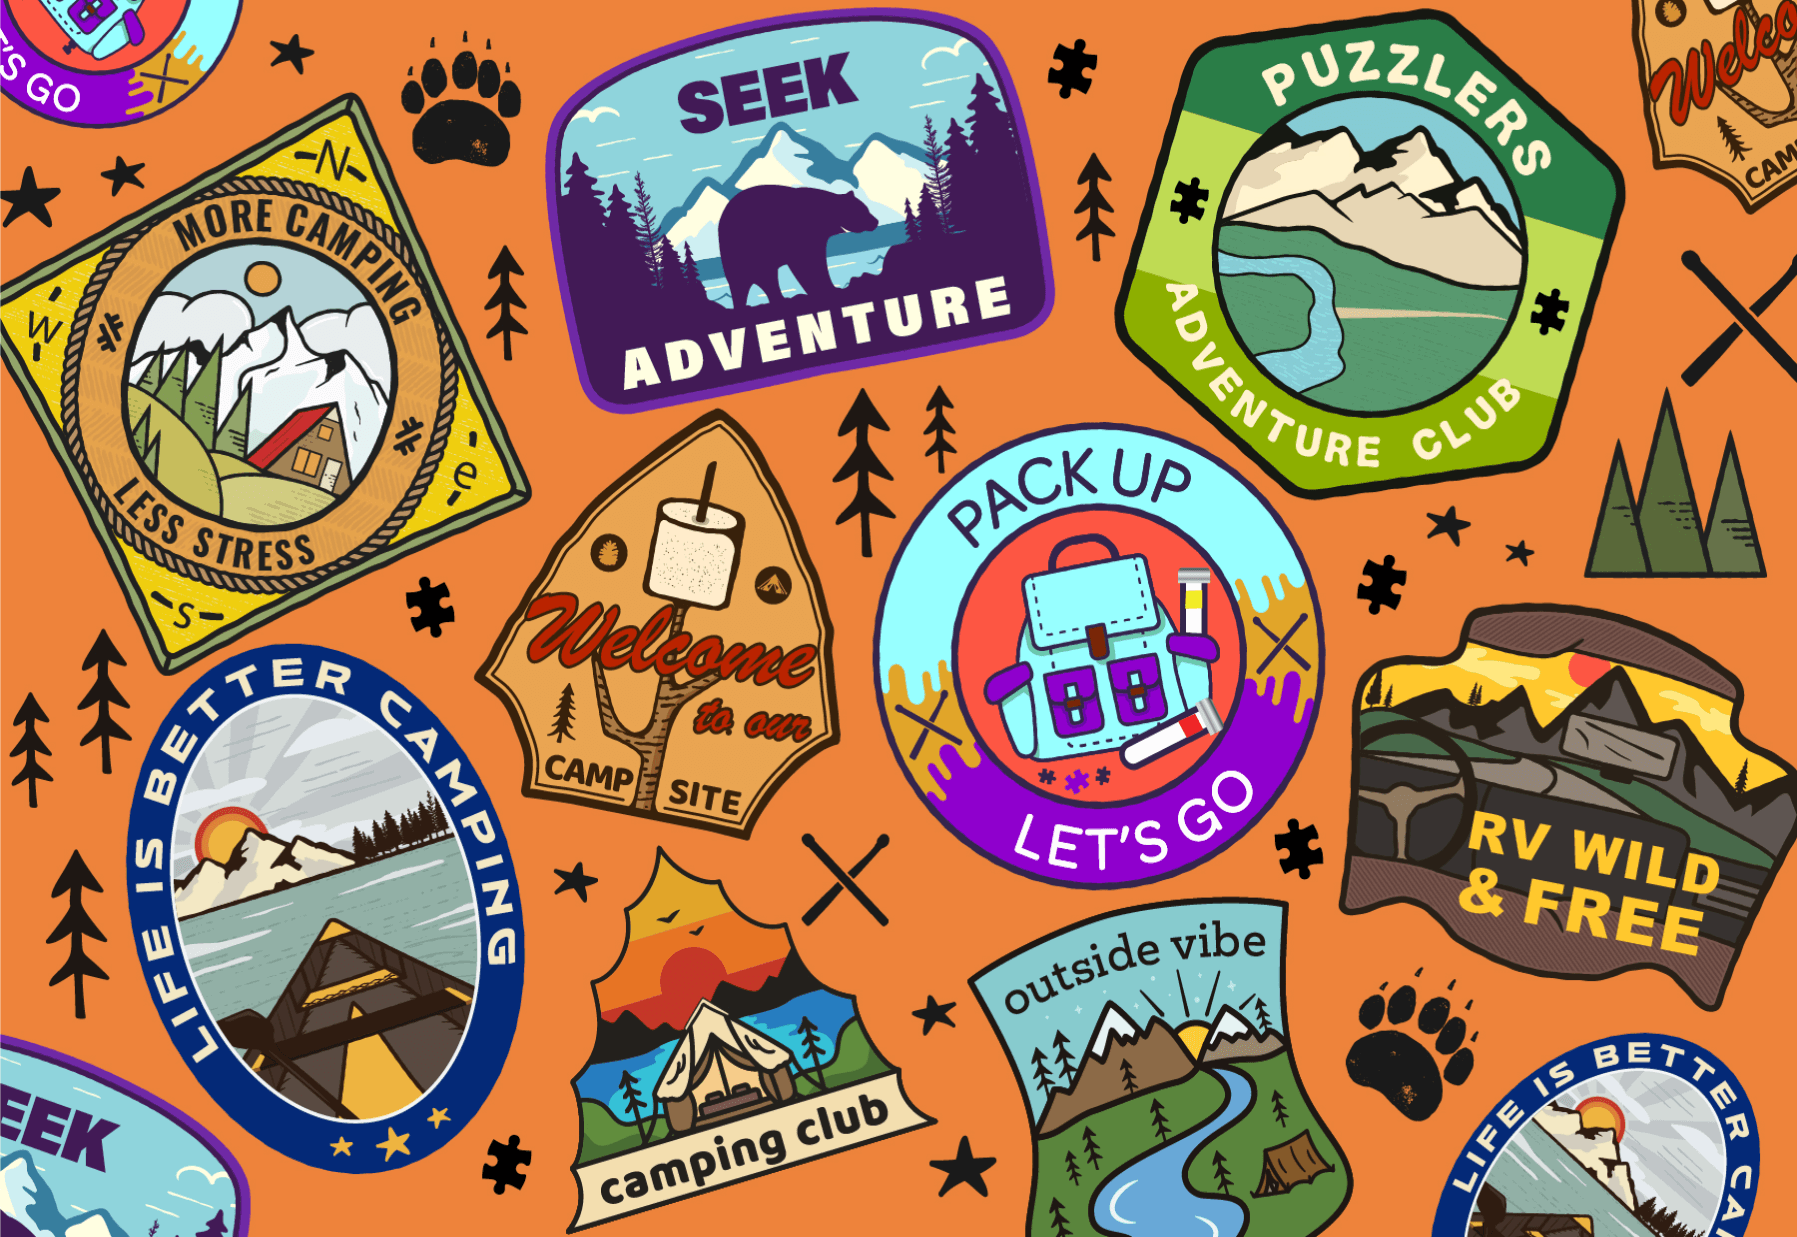 camping merit badges on an orange background mini micro jigsaw puzzle